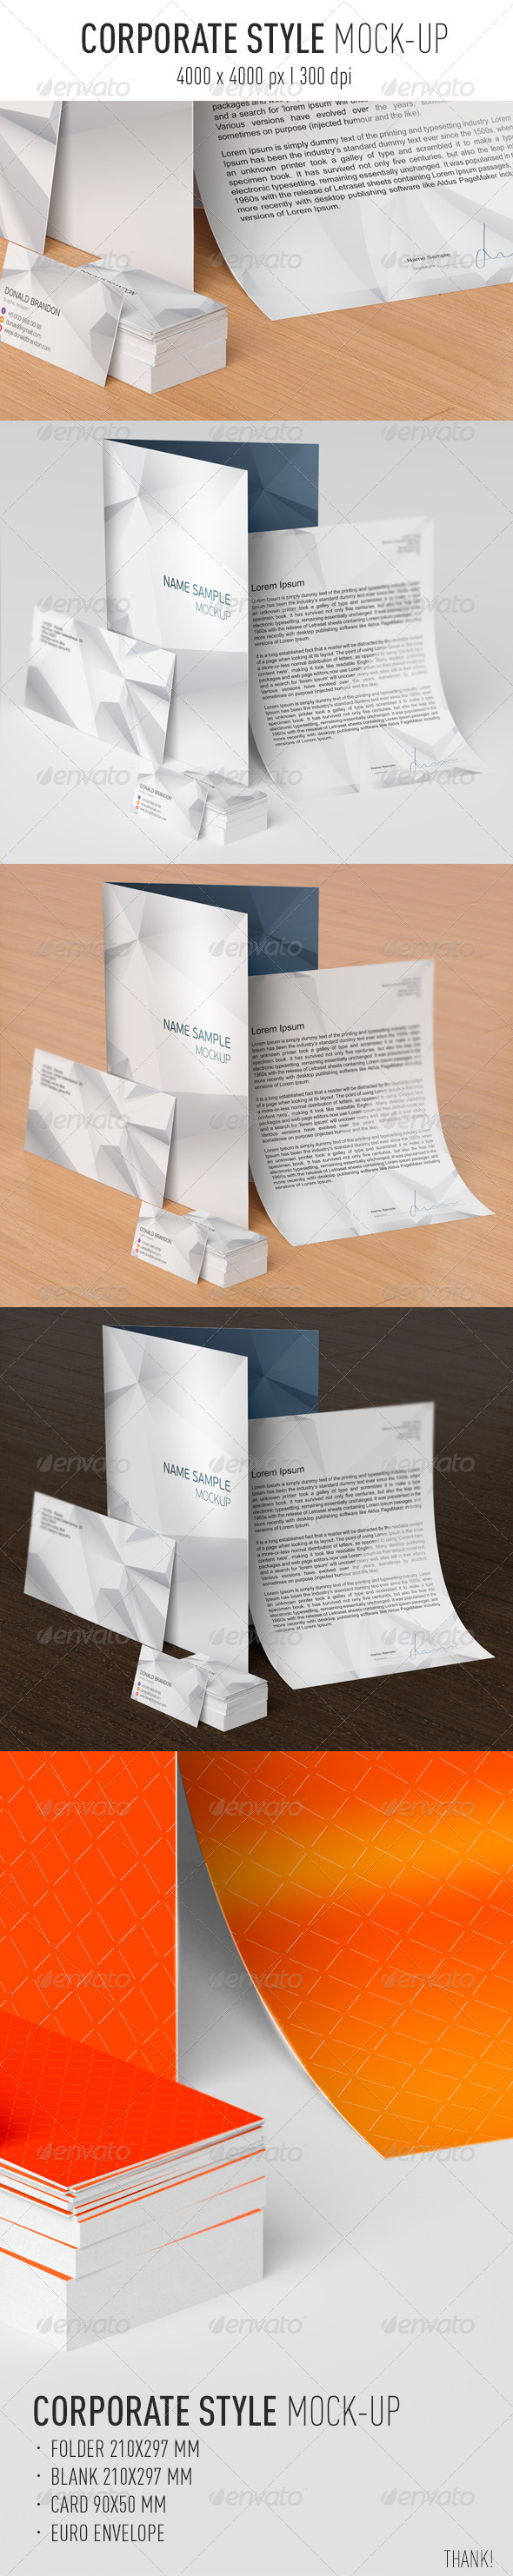 GraphicRiver Stationery I Branding Mock-Up 8072252